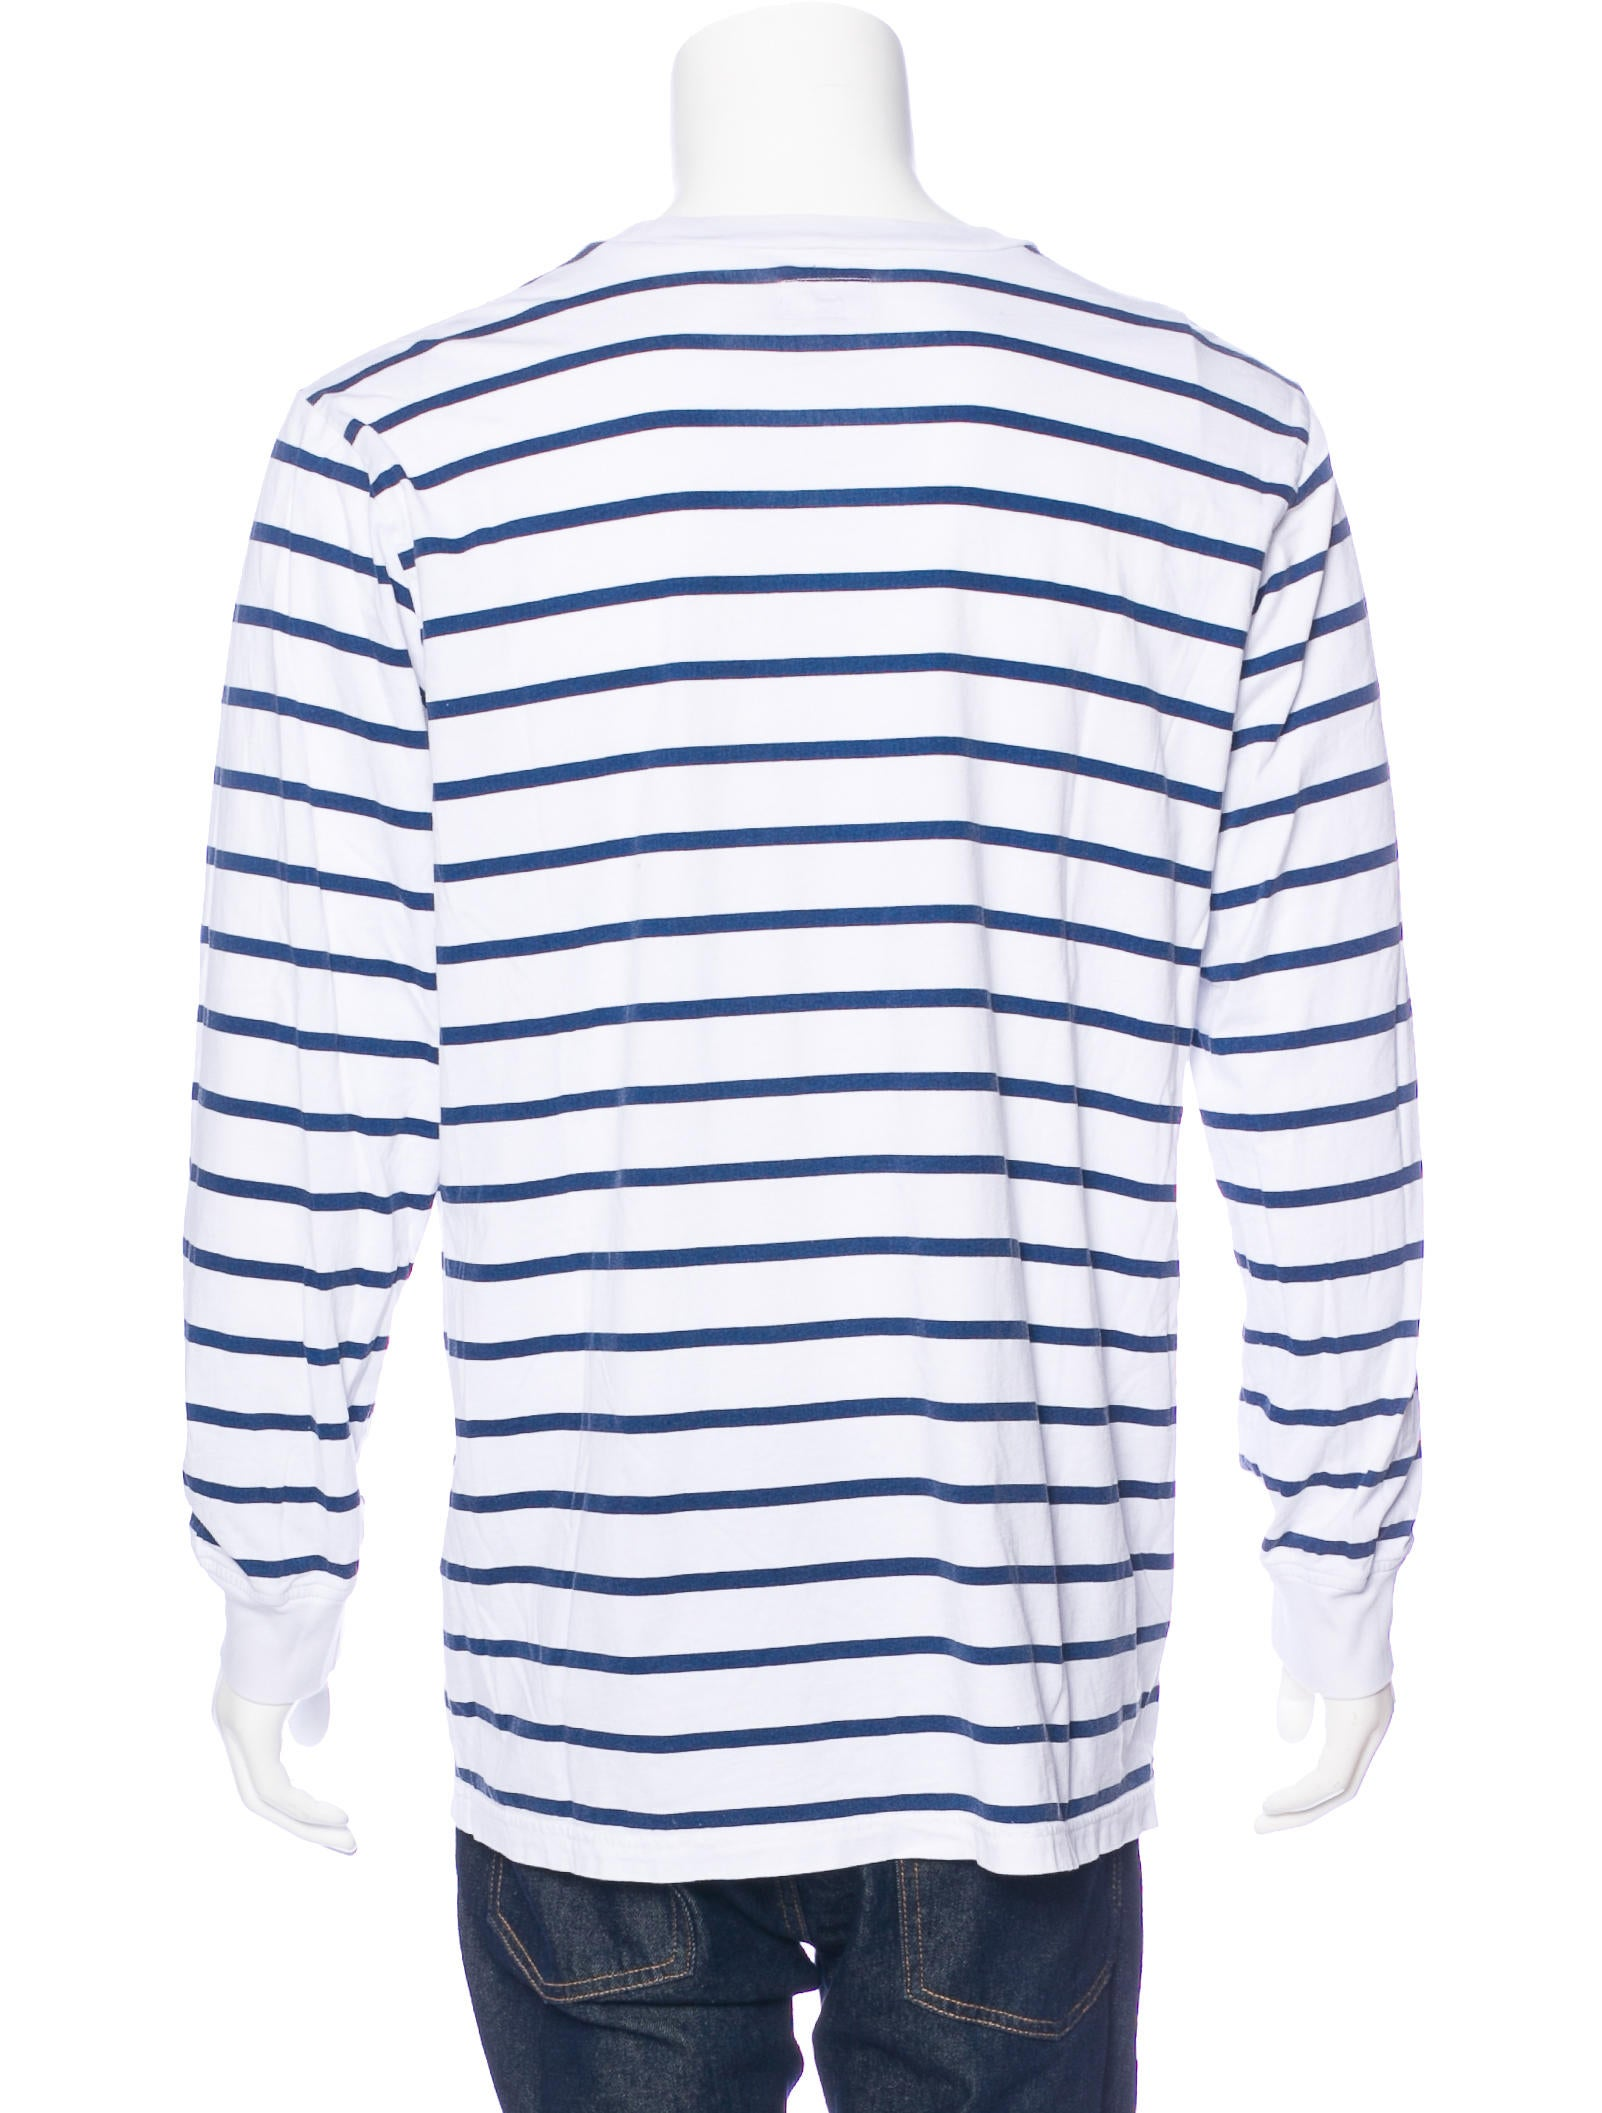 Supreme striped long sleeve t shirt clothing Striped long sleeve t shirt